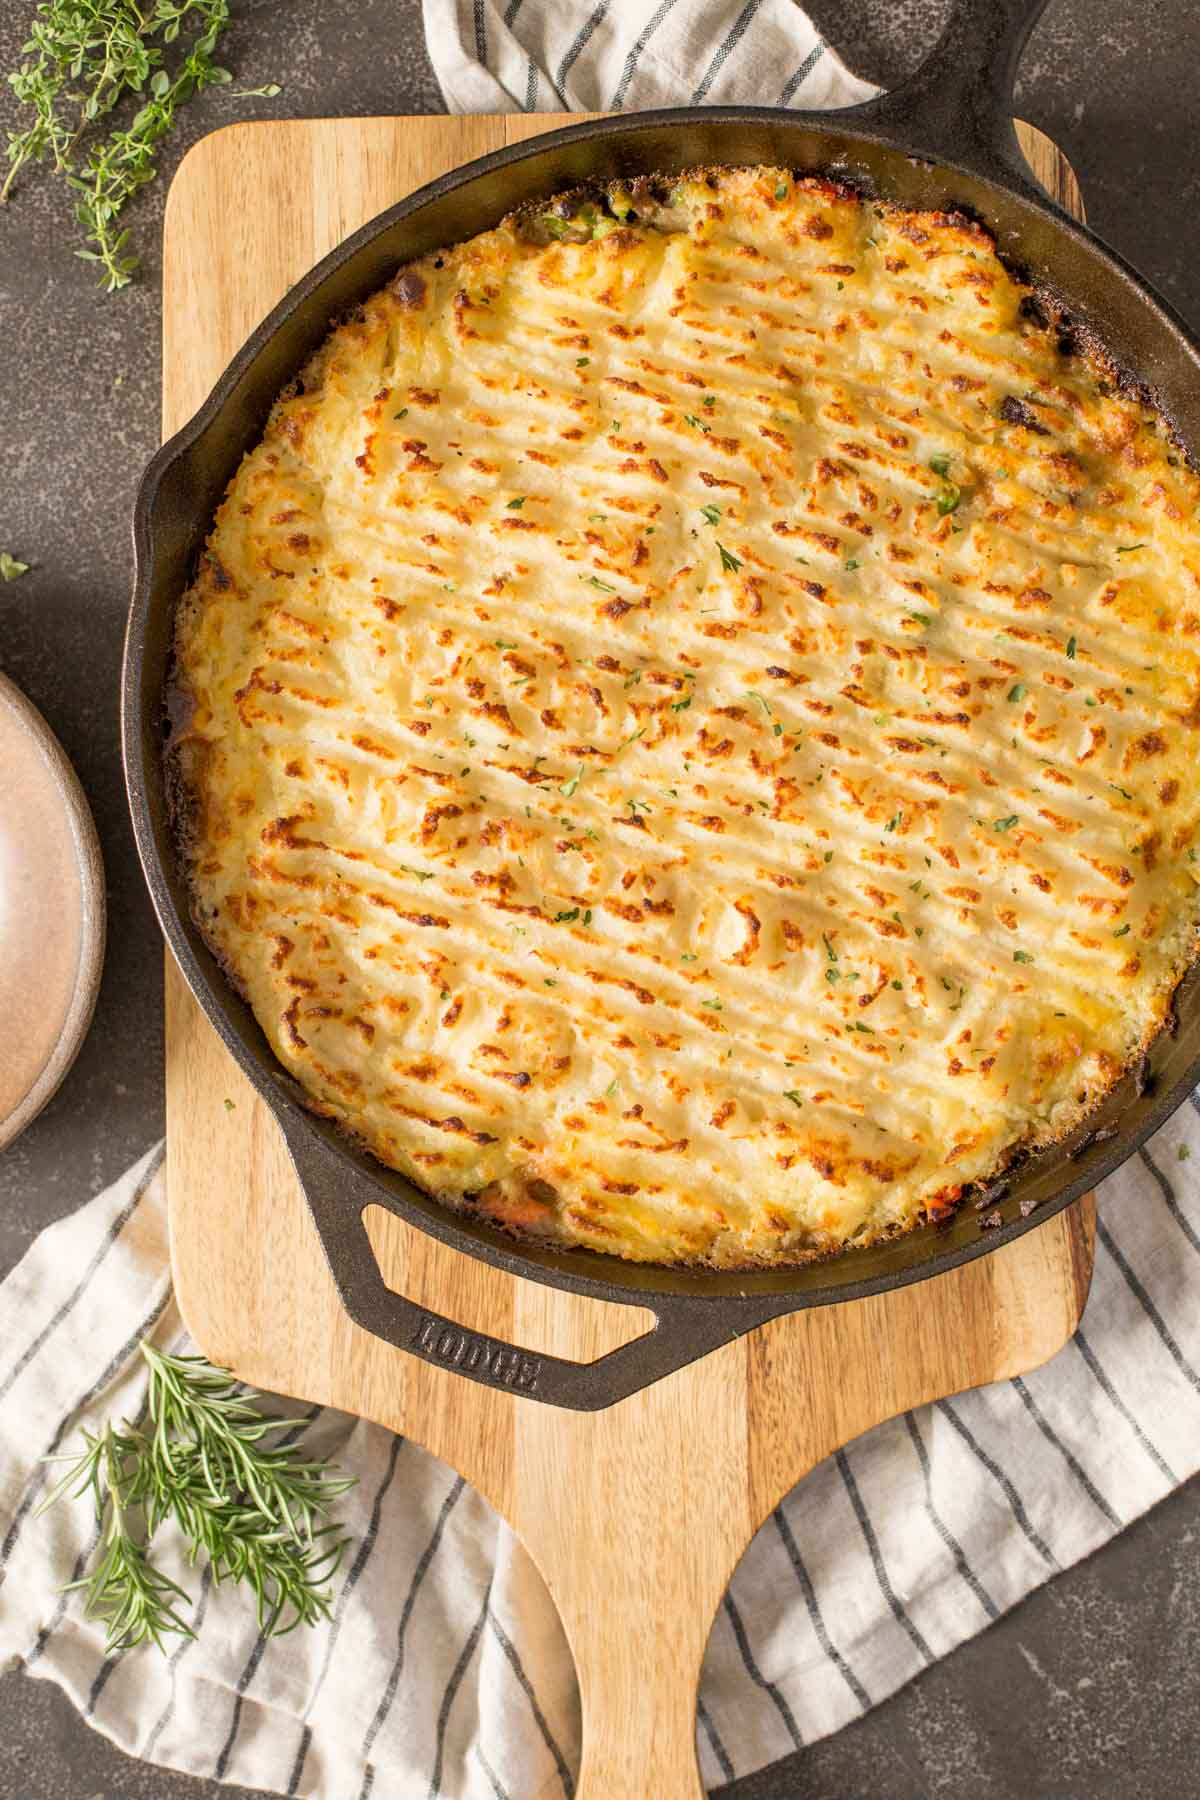 Easy Homemade Shepherd's Pie in a cast iron skillet, sitting on top of a wood cutting board.